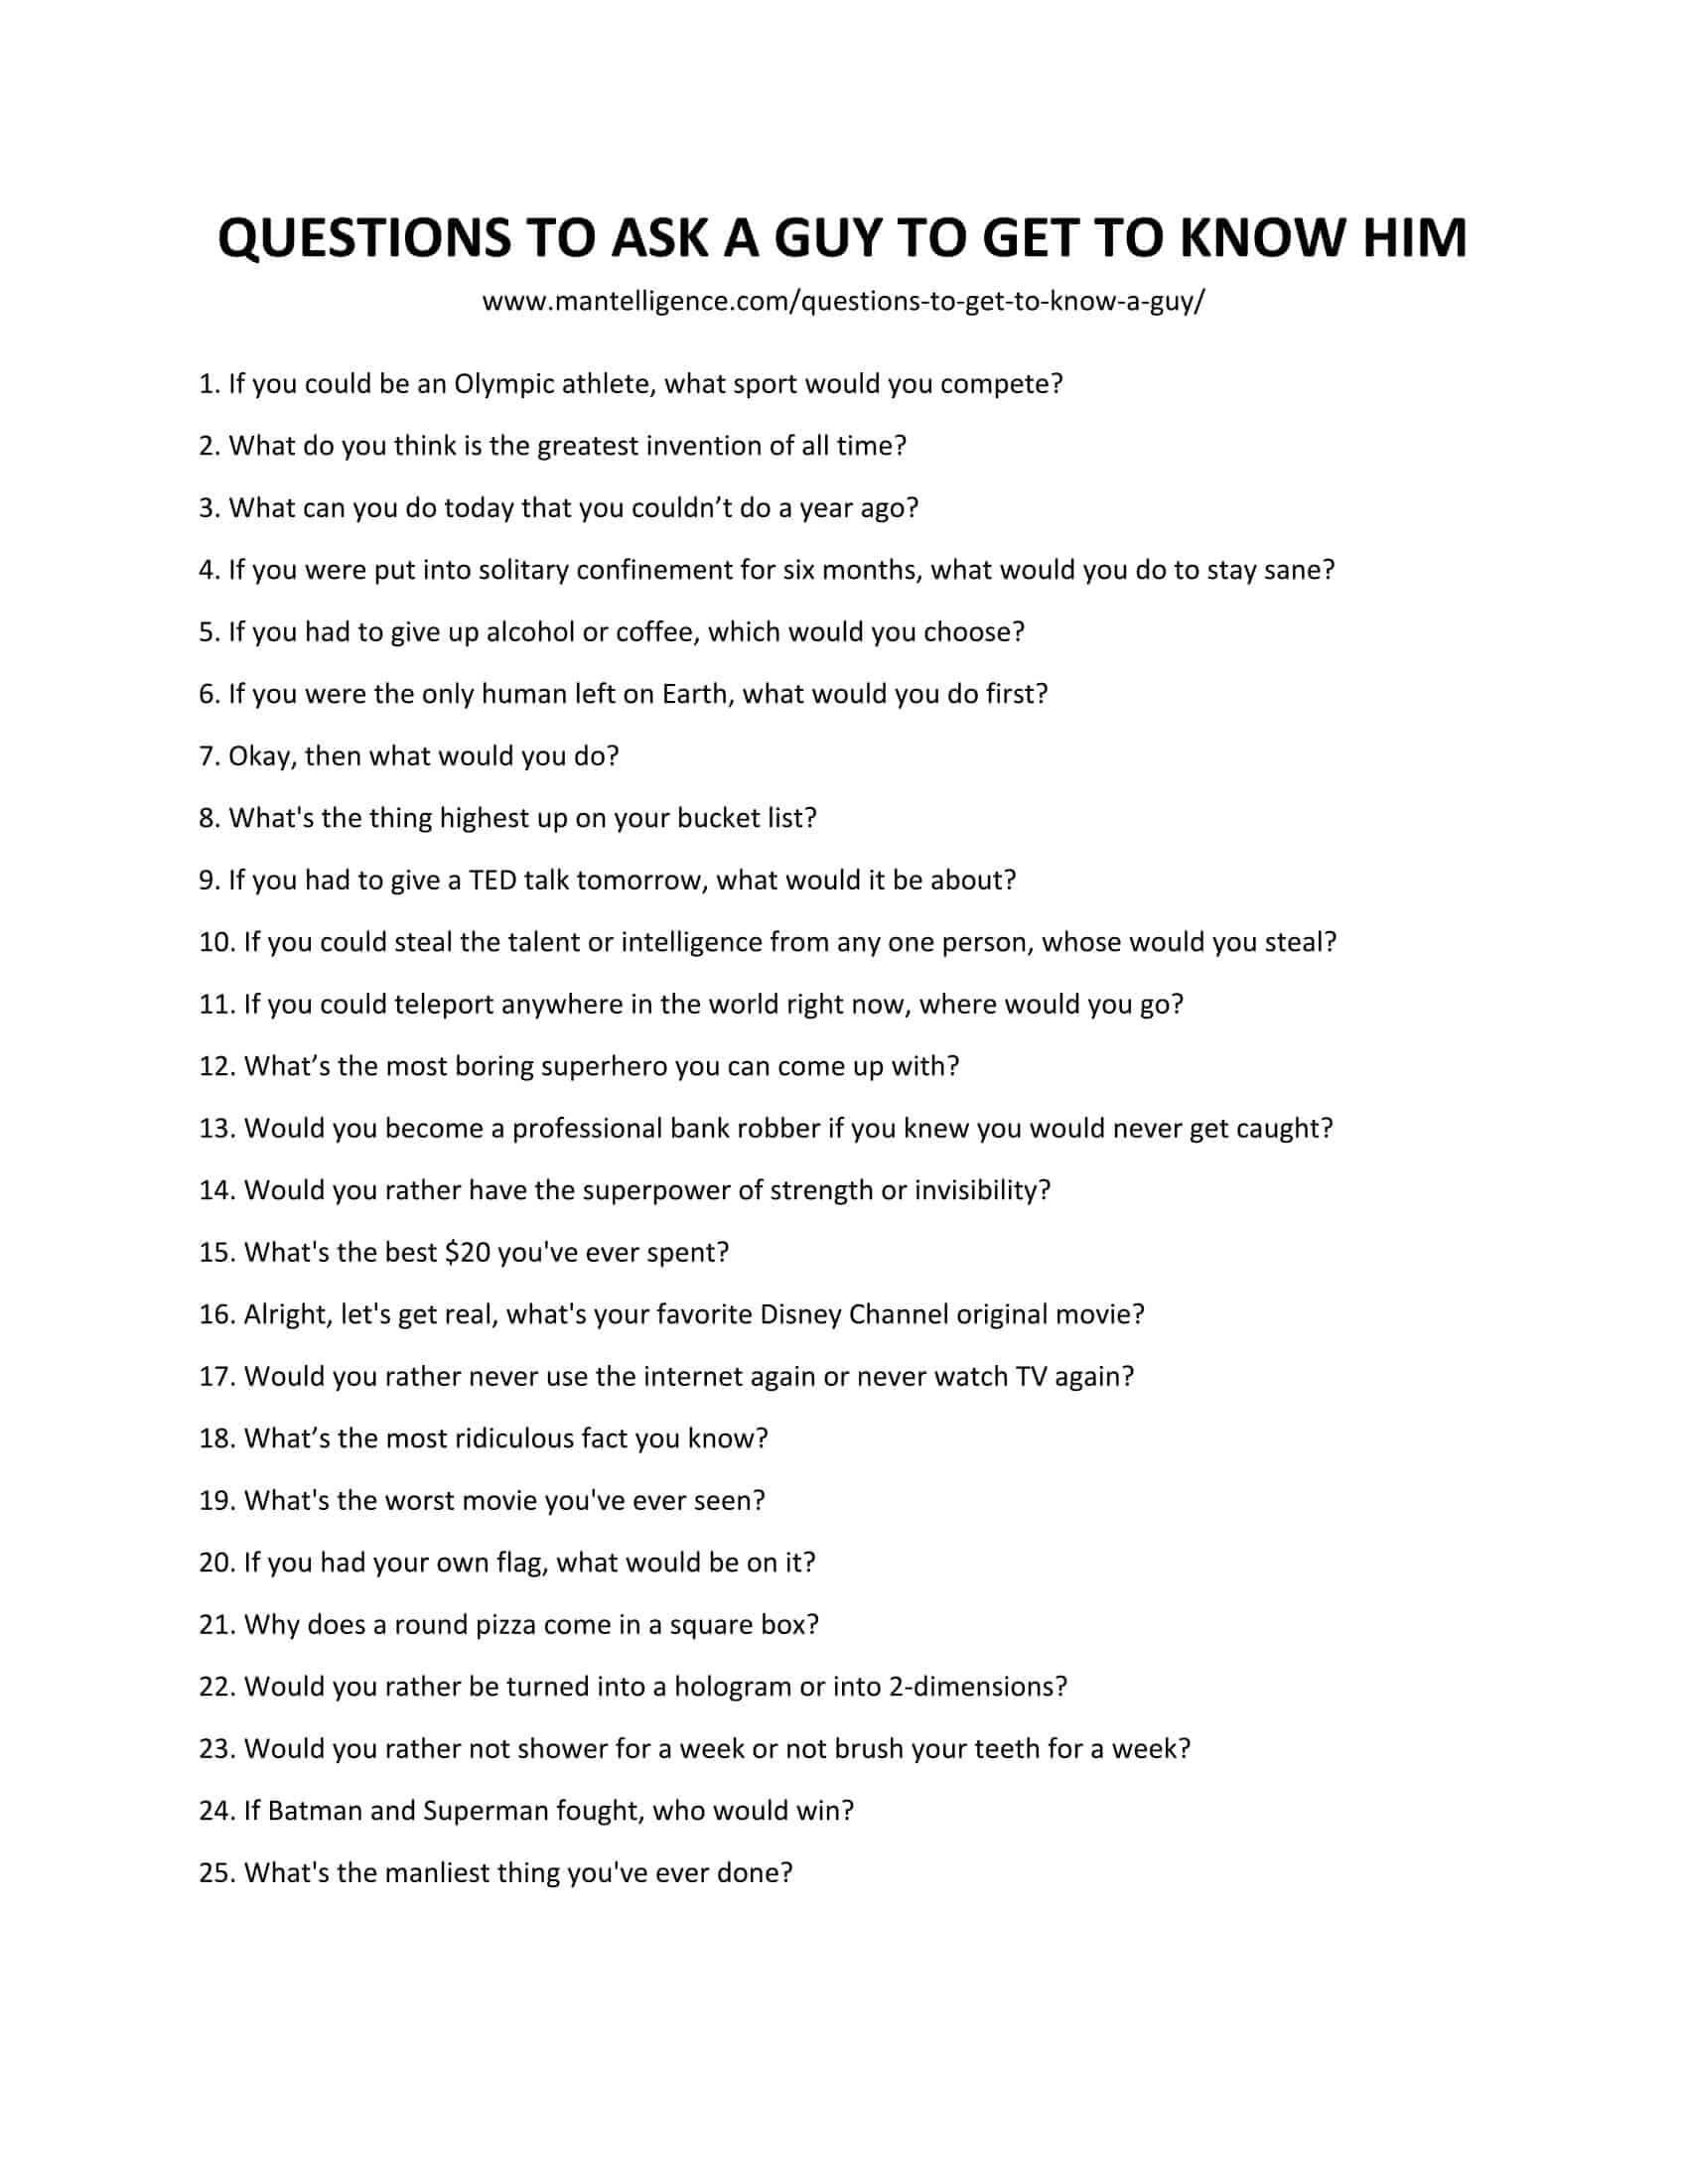 Questions to ask guys to get to know them